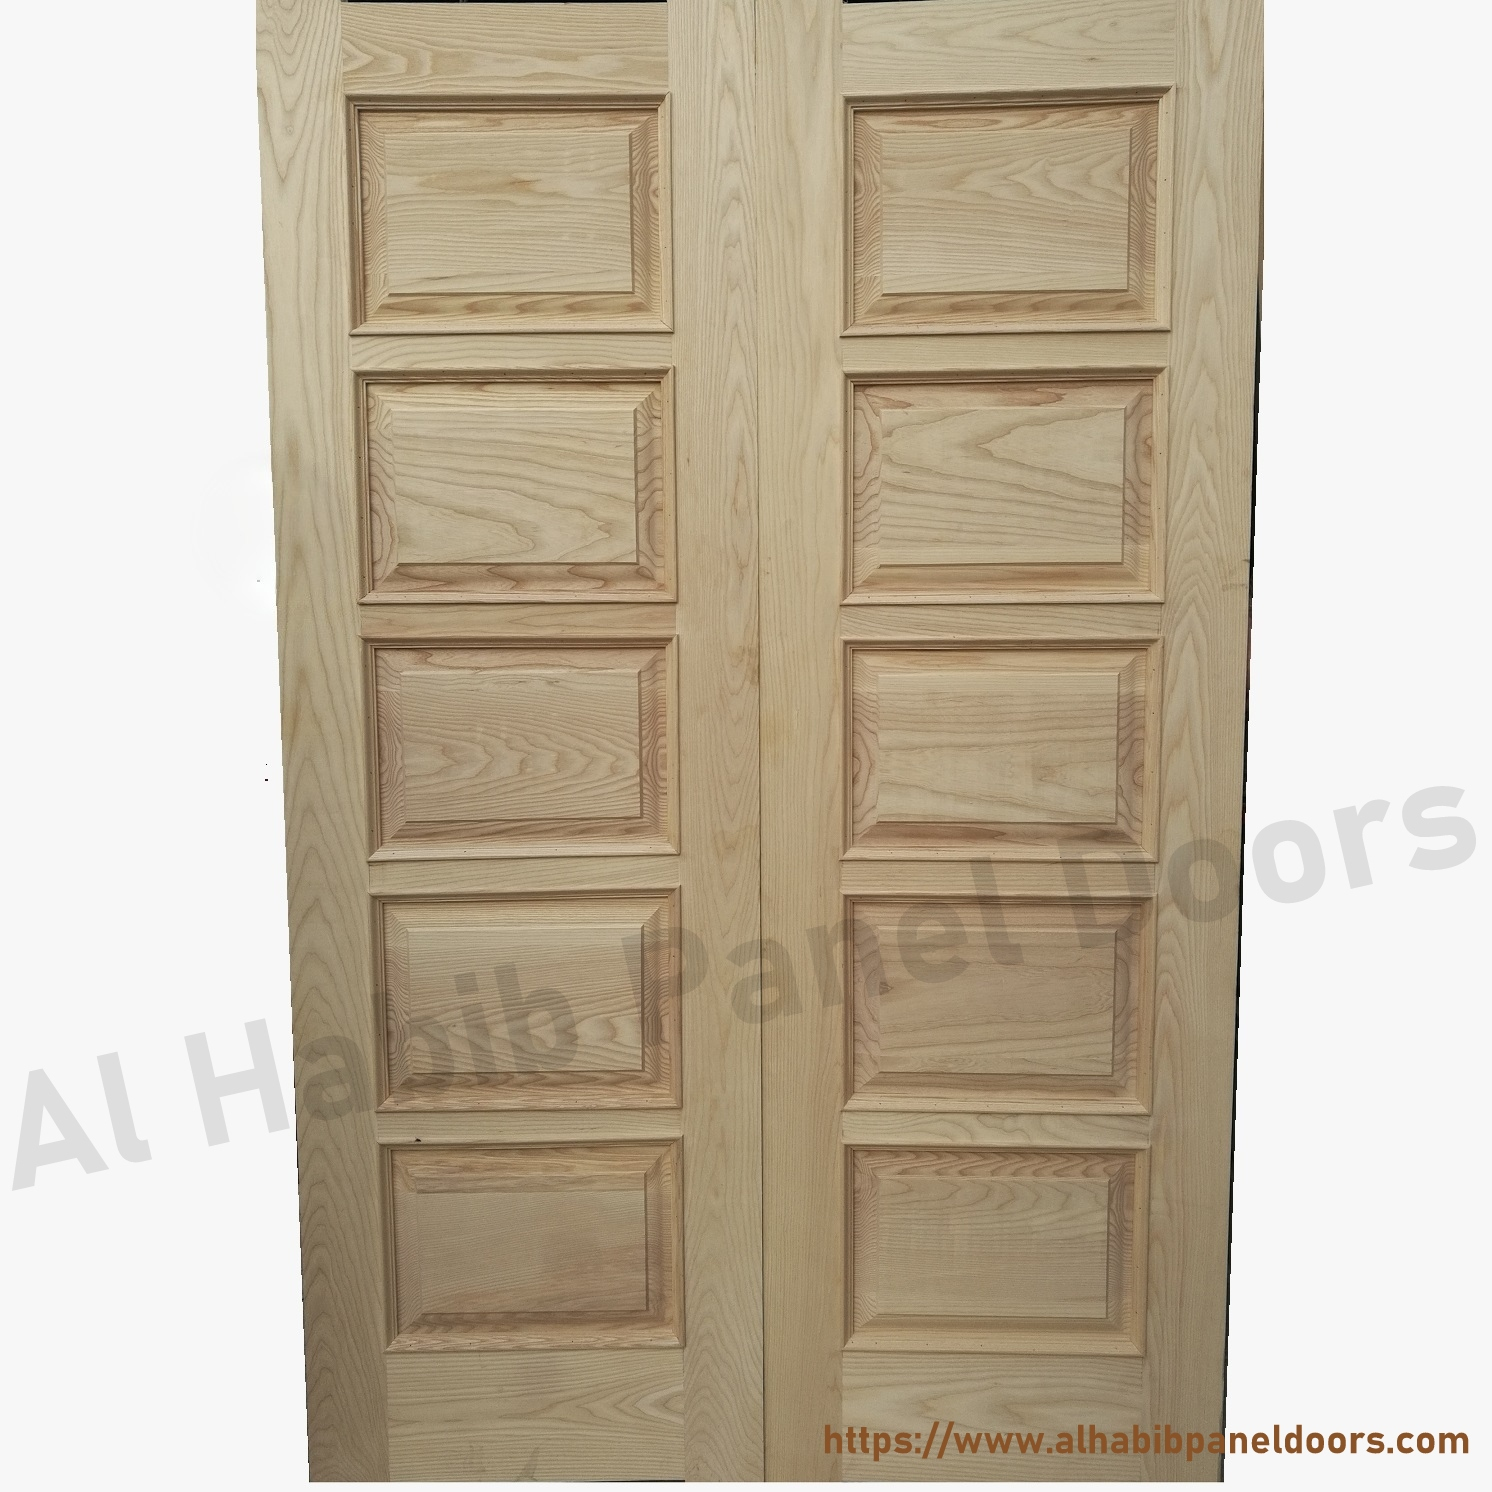 Double door main door designs joy studio design gallery Best door designs